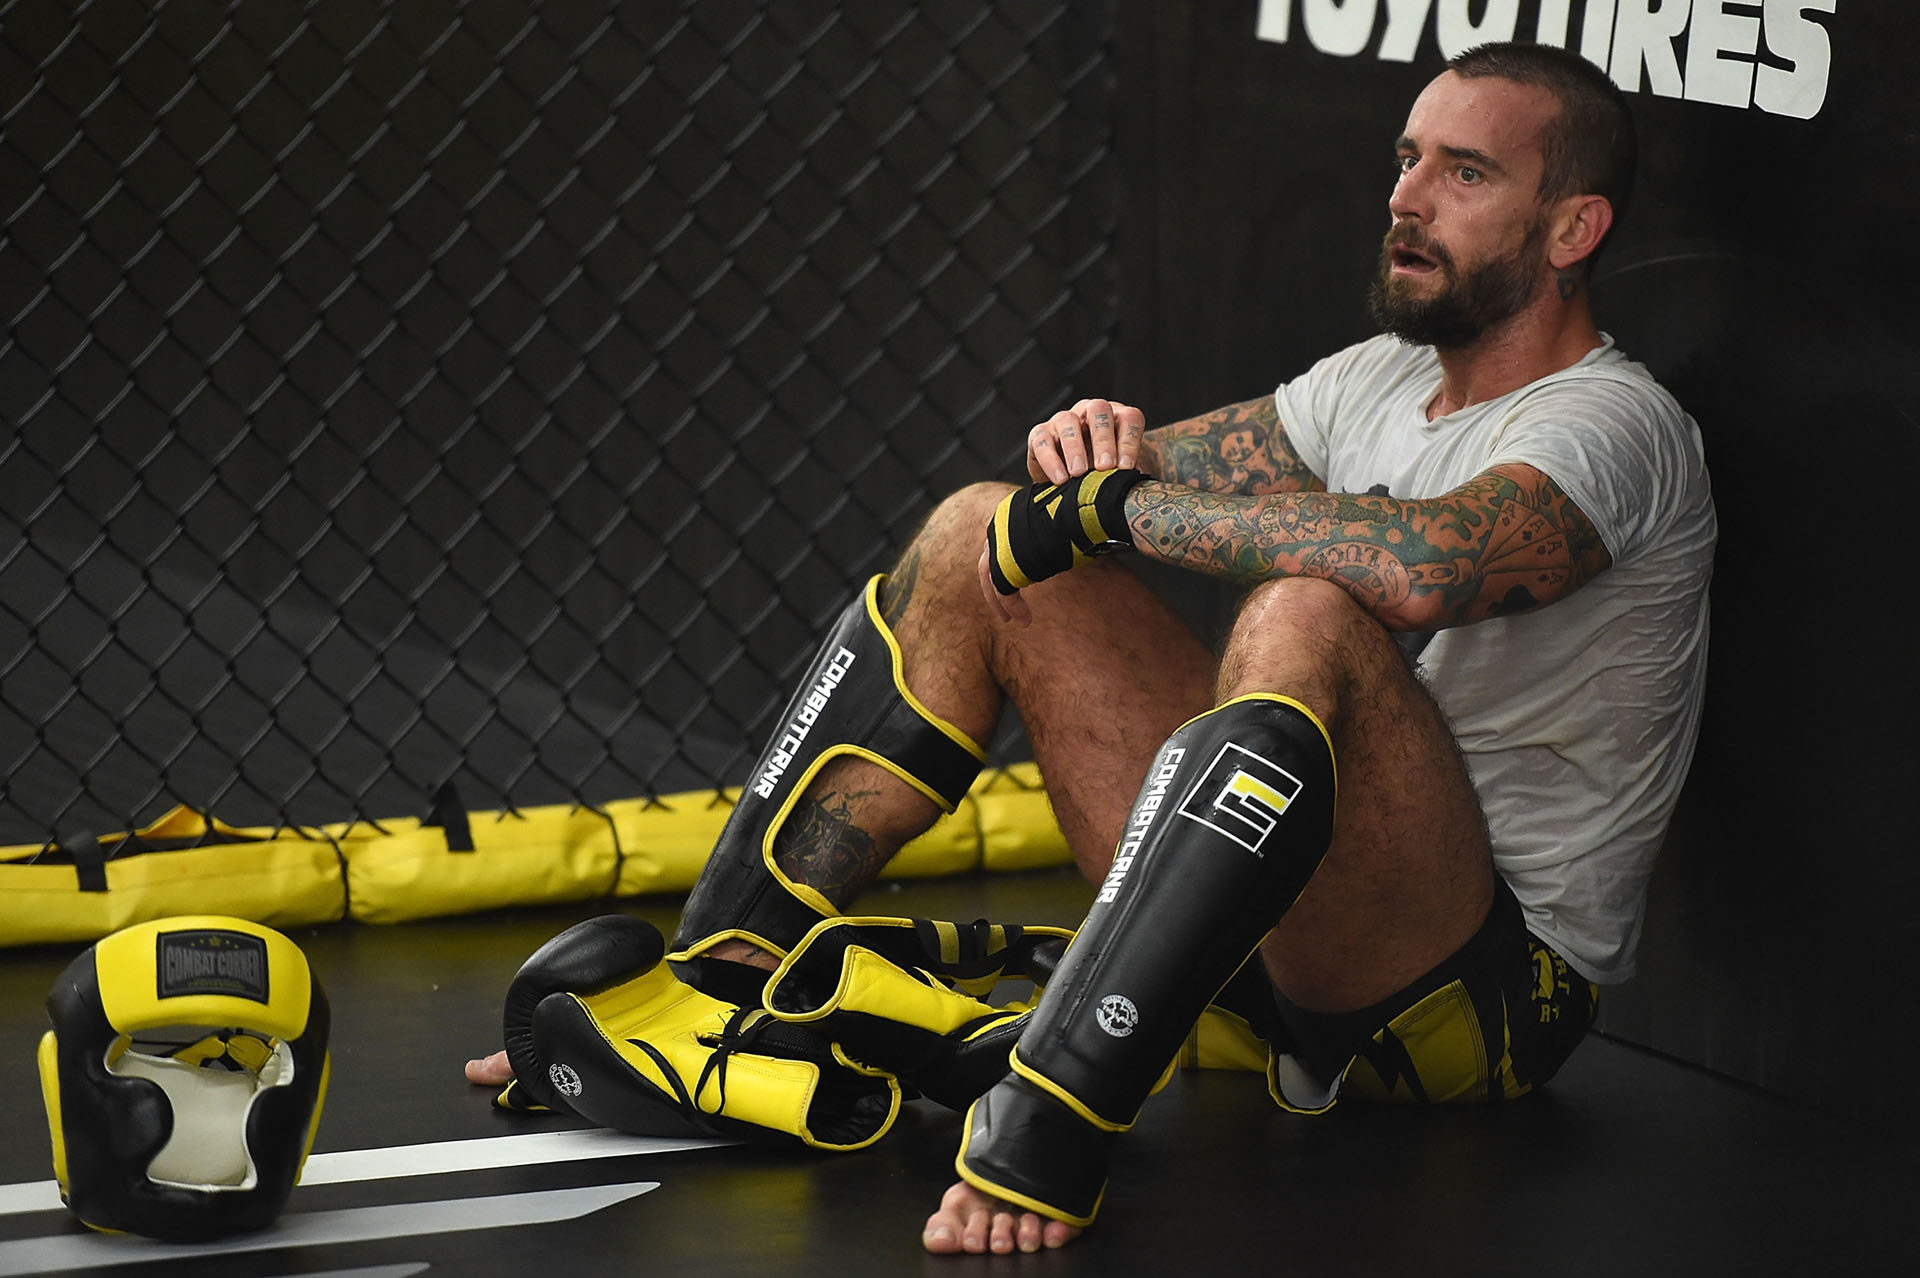 UFC's CM Punk Milwaukee Gym Day